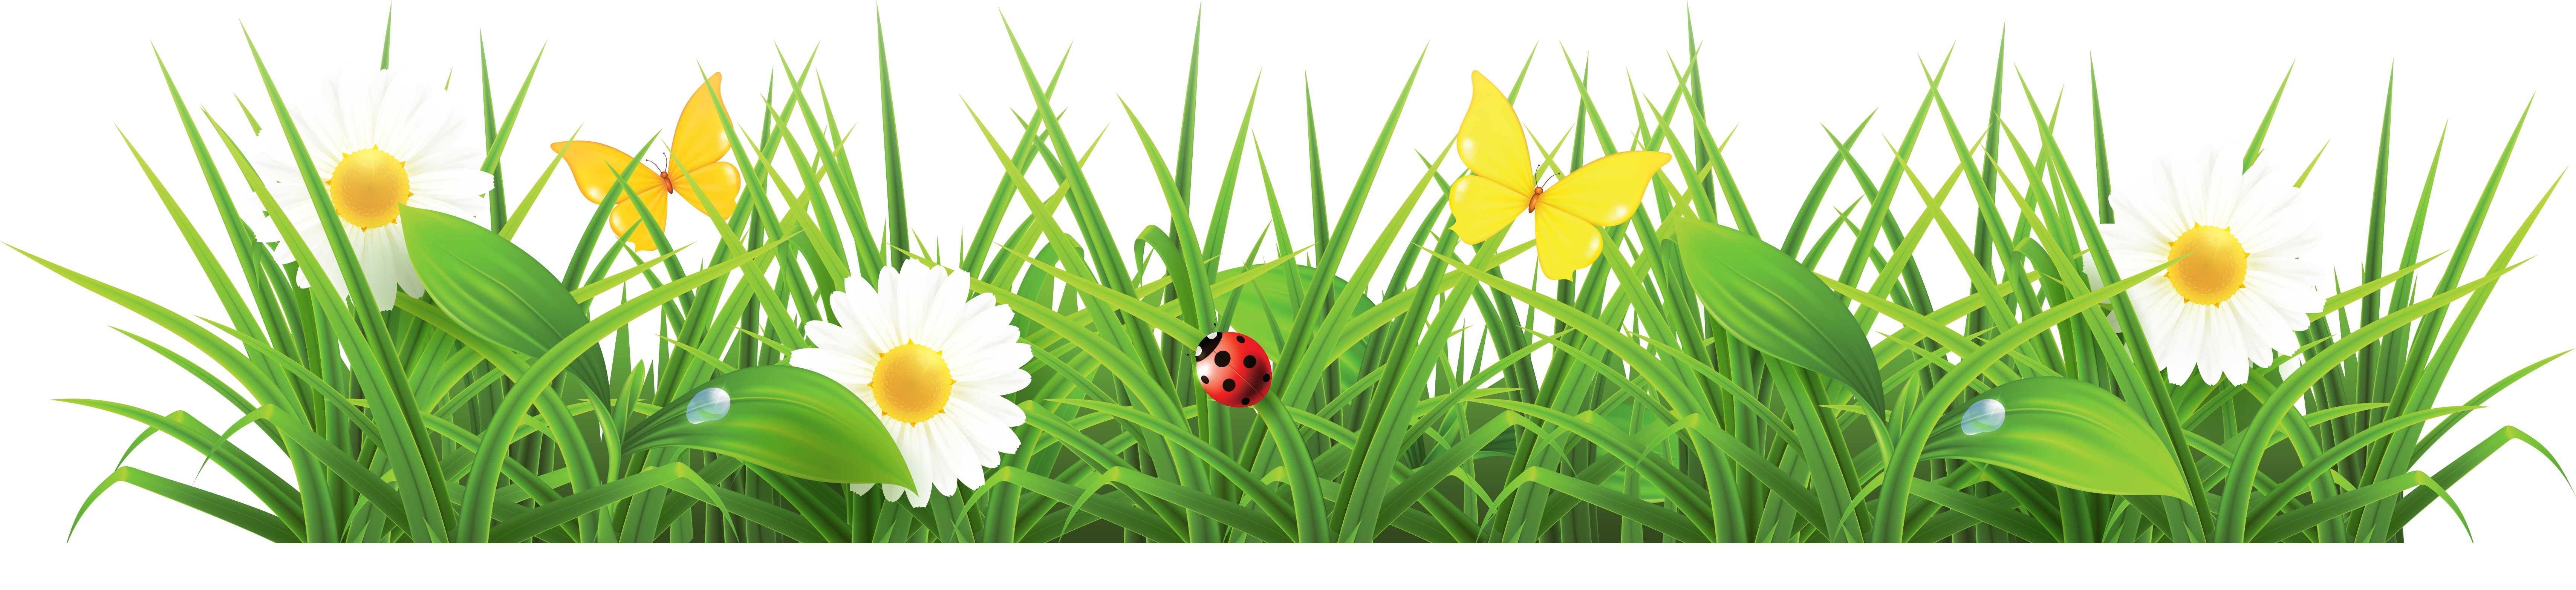 Grass ground with flowers clipart picture 0